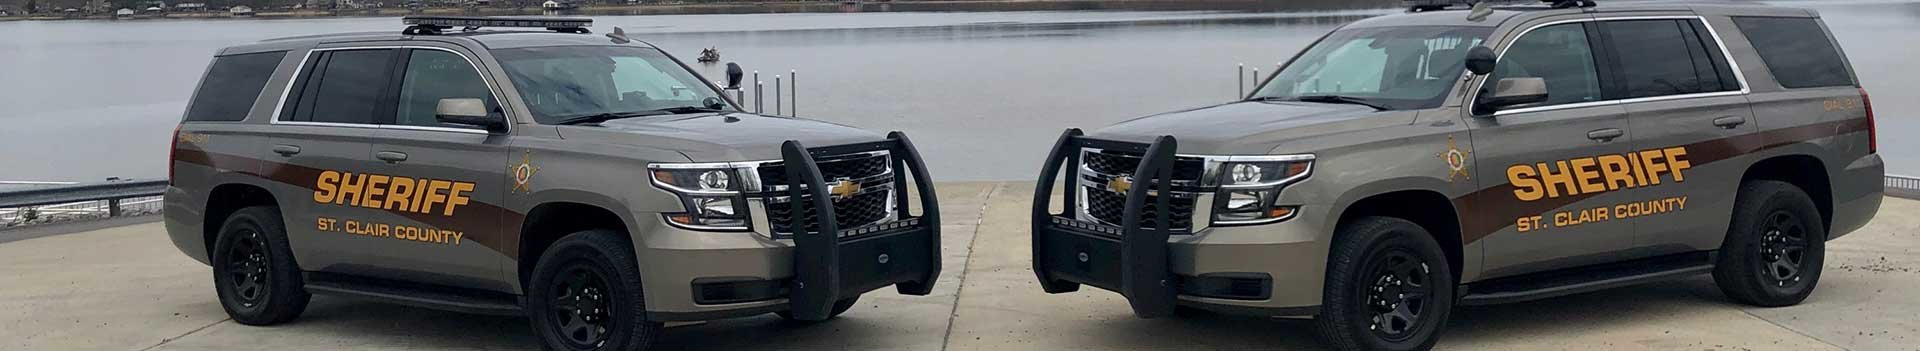 St. Clair County Sheriff's Office patrol vehicles parked in front of lake